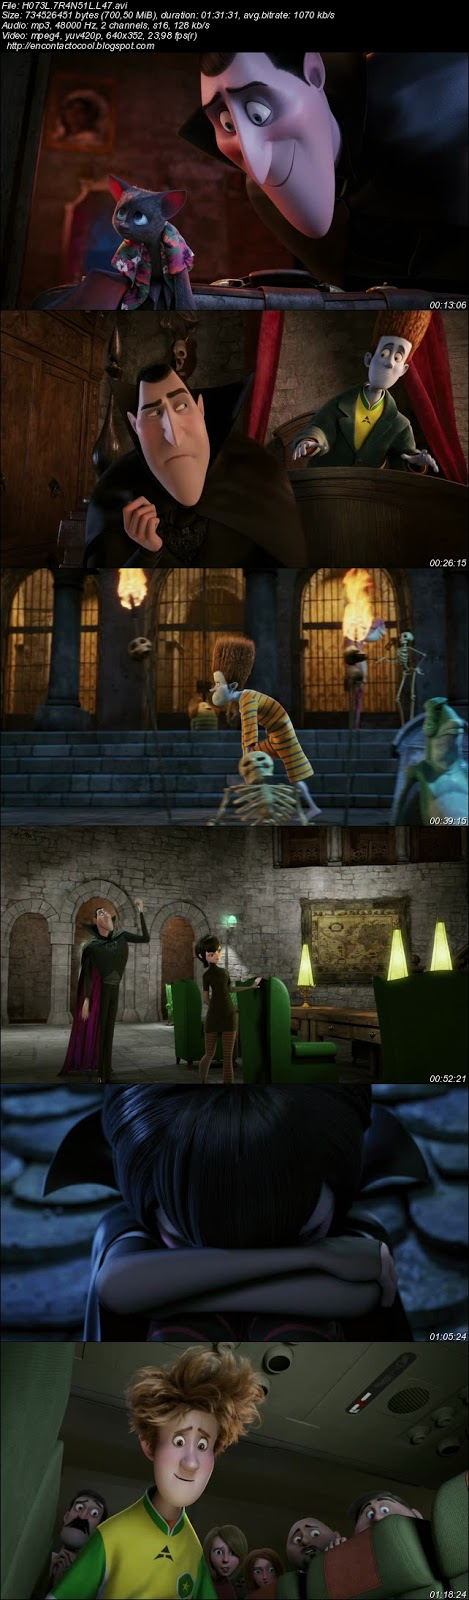 Hotel Transylvania (2012)  screenshot